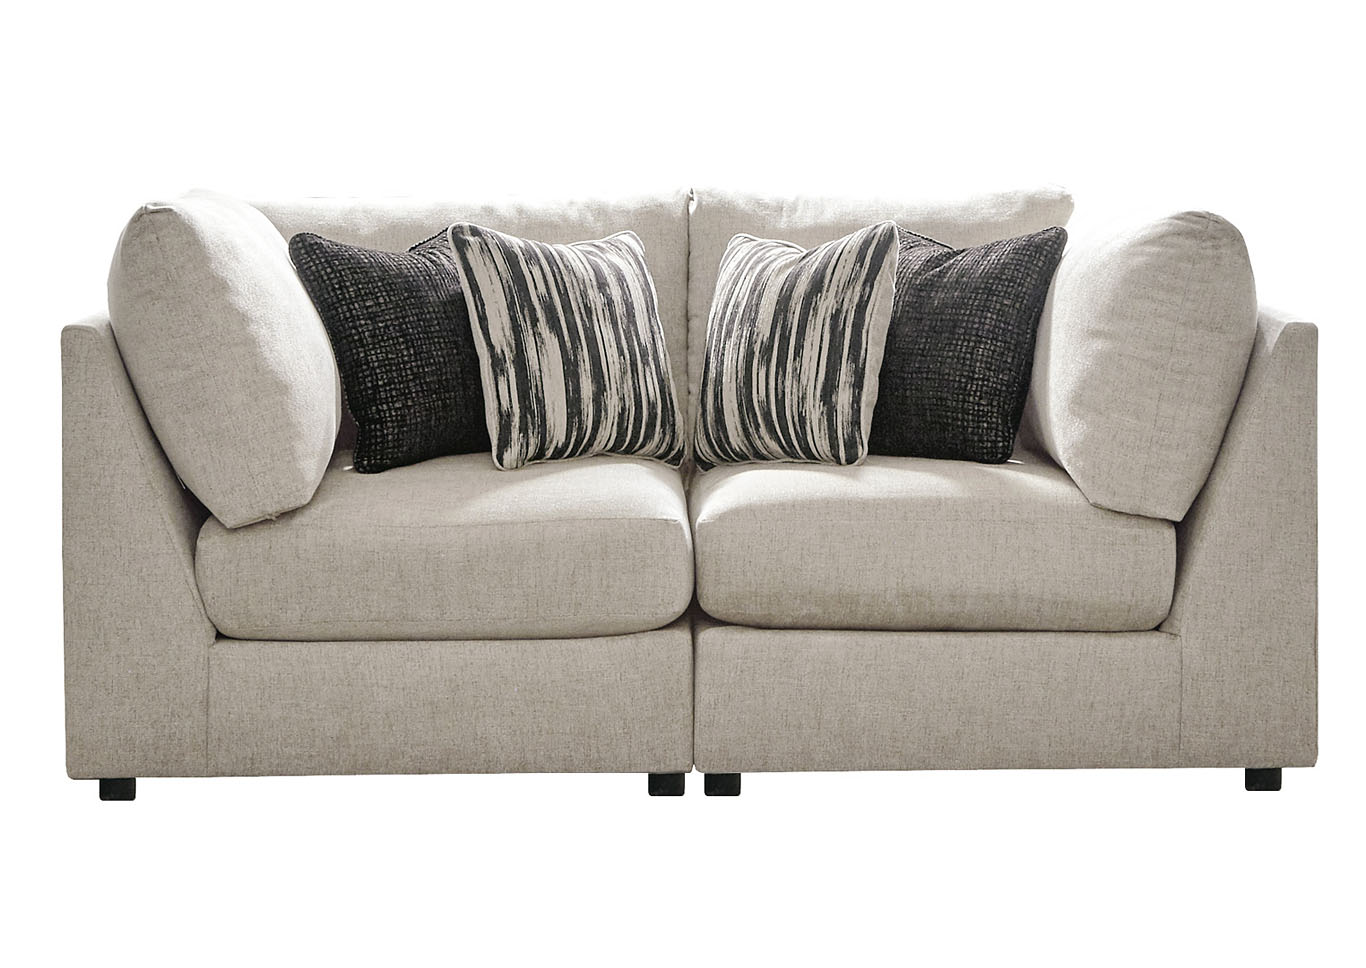 Kellway Bisque 2 Piece Sectional,Signature Design By Ashley